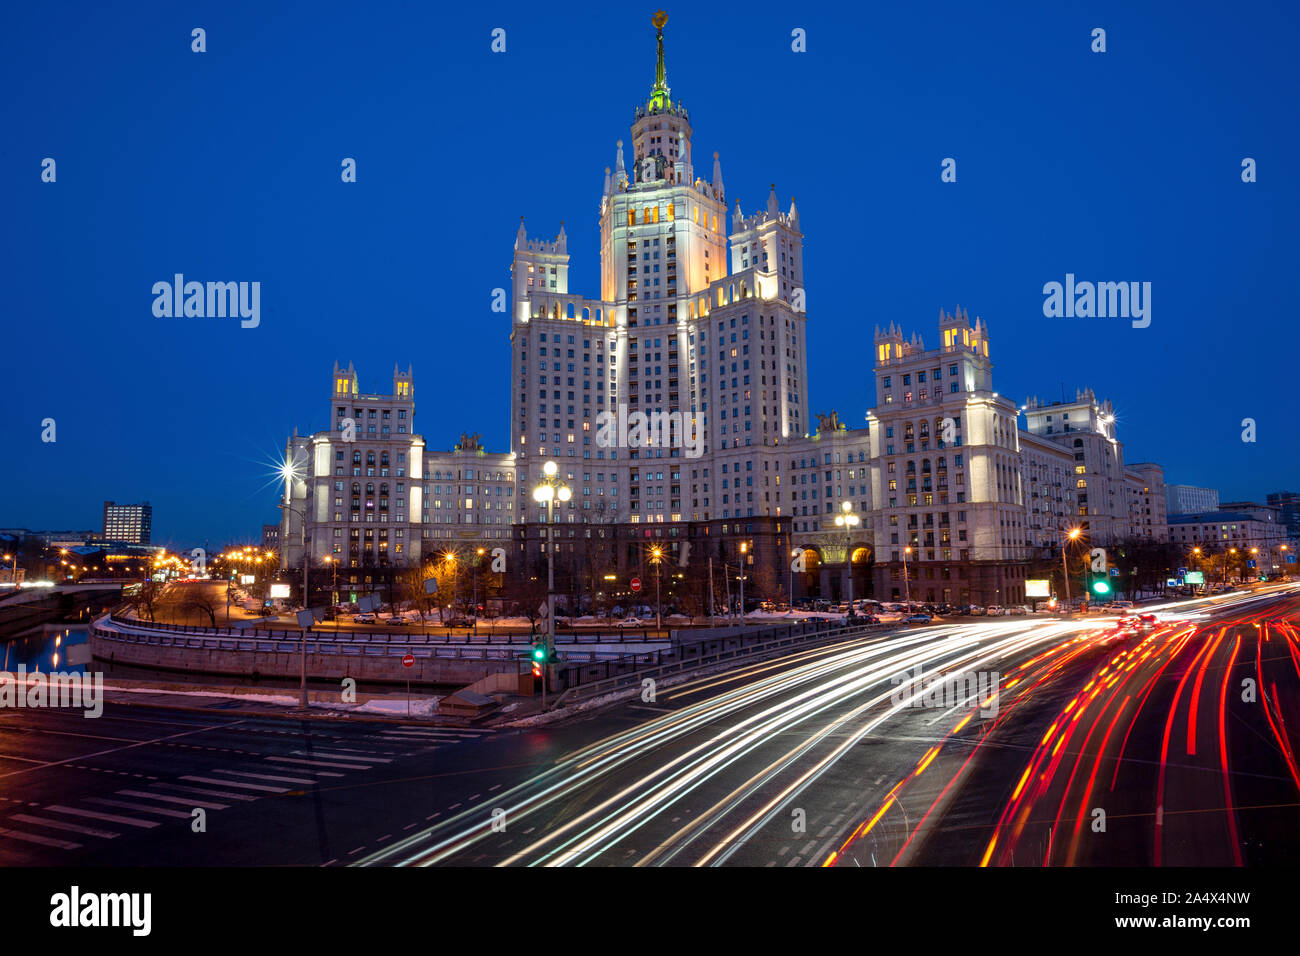 View of the skyscraper on Kotelnicheskaya Embankment and Traffic Trails at Dusk in center of Moscow city, Russia Stock Photo